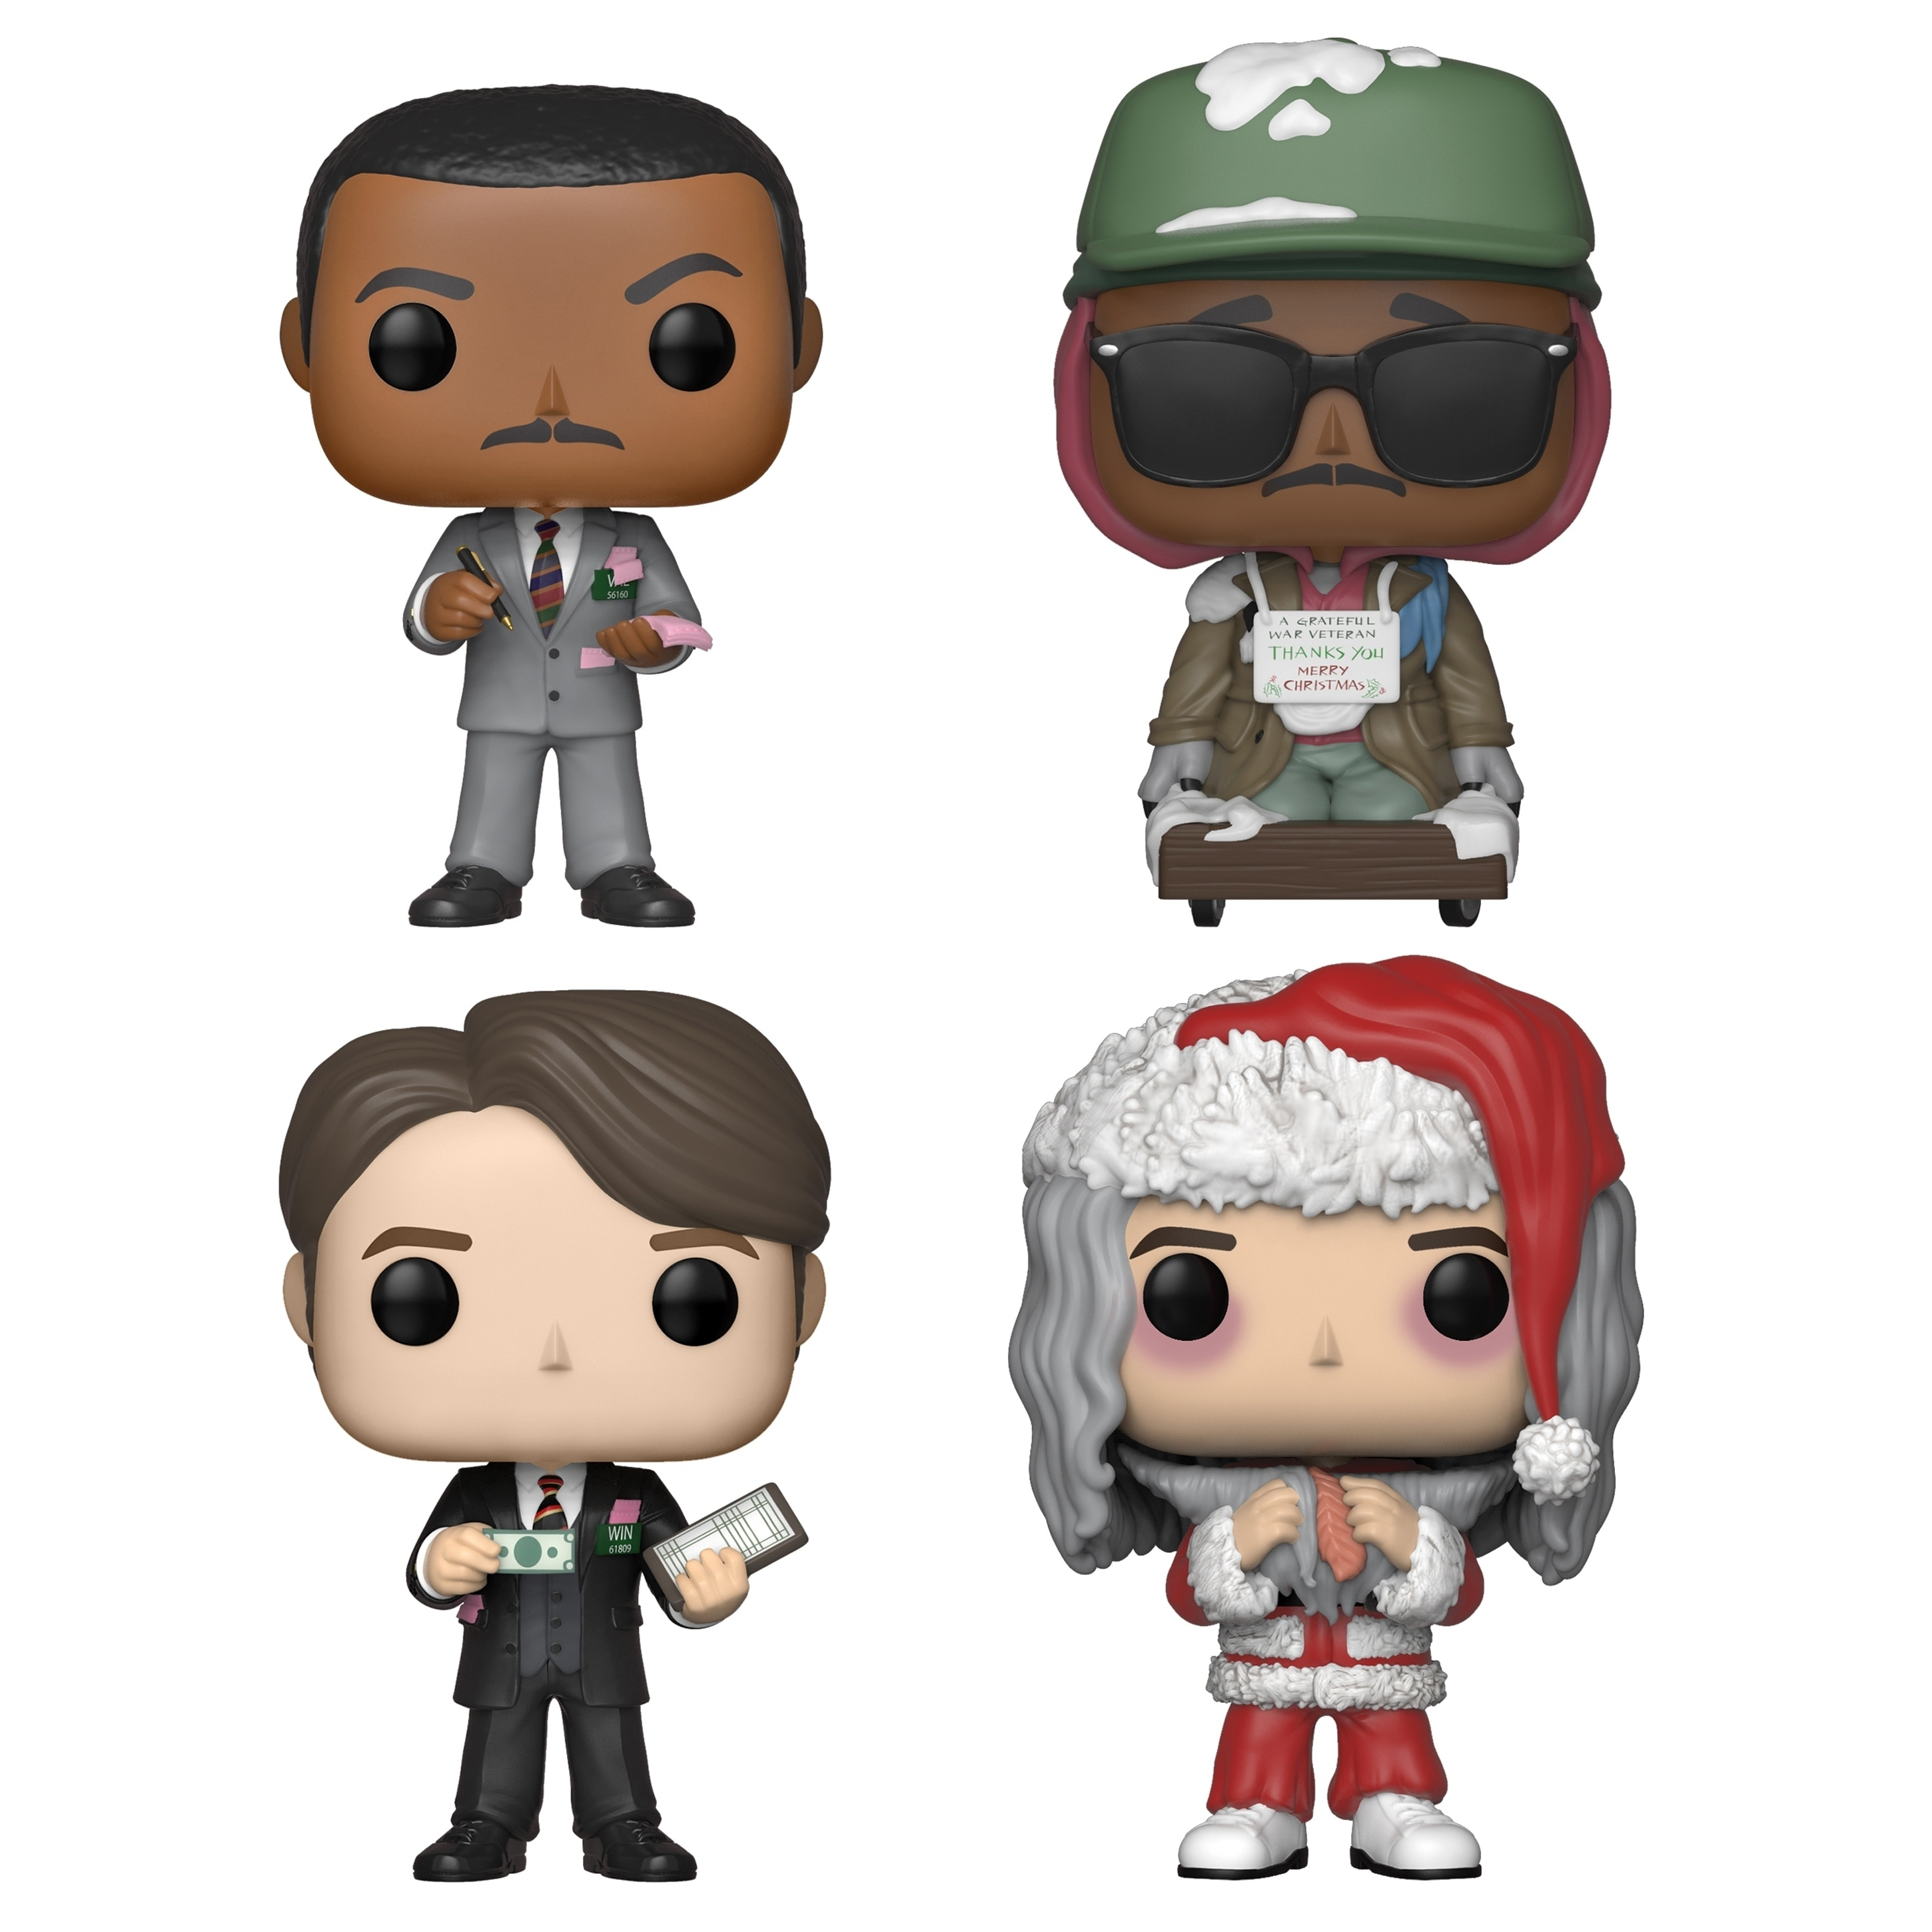 Funko-Pop Movies TRADING PLACES-Agent Spécial Orange Brand New in Box